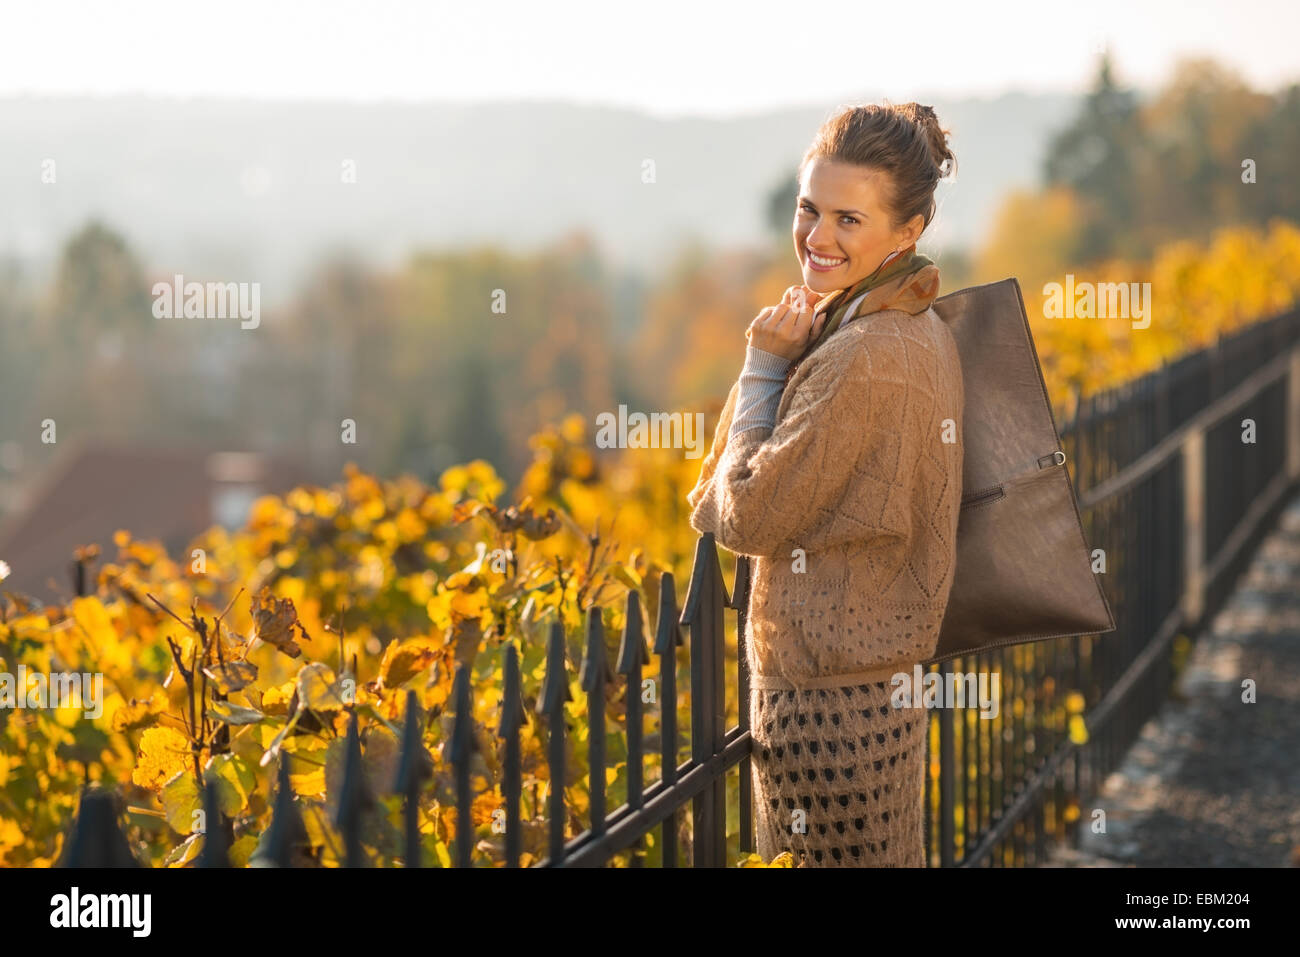 Portrait of happy young woman in autumn outdoors - Stock Image